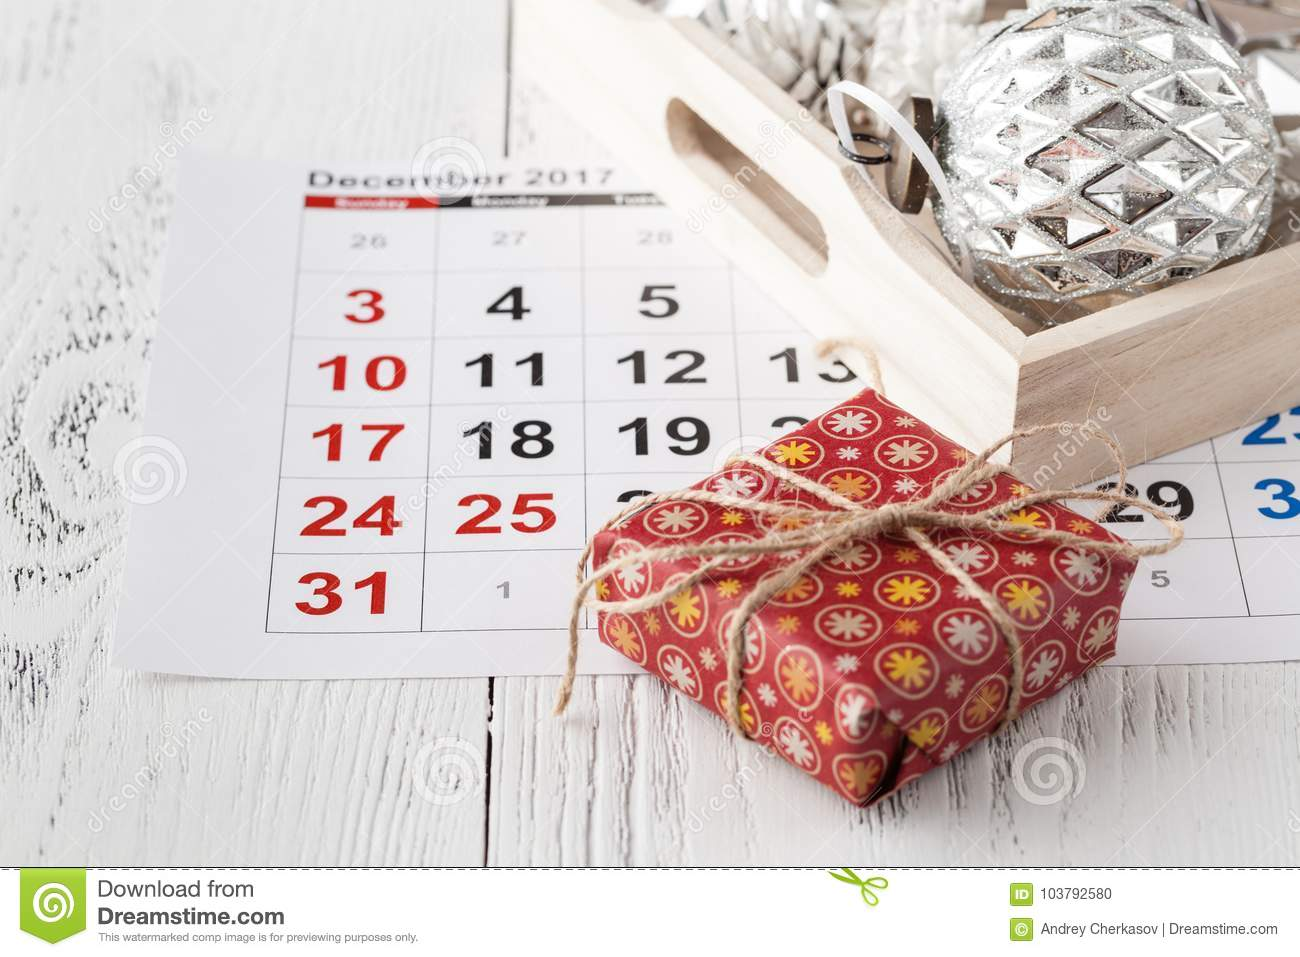 download ready to coming christmas calendar with marked date of christmas day stock photo - Whens Christmas Day